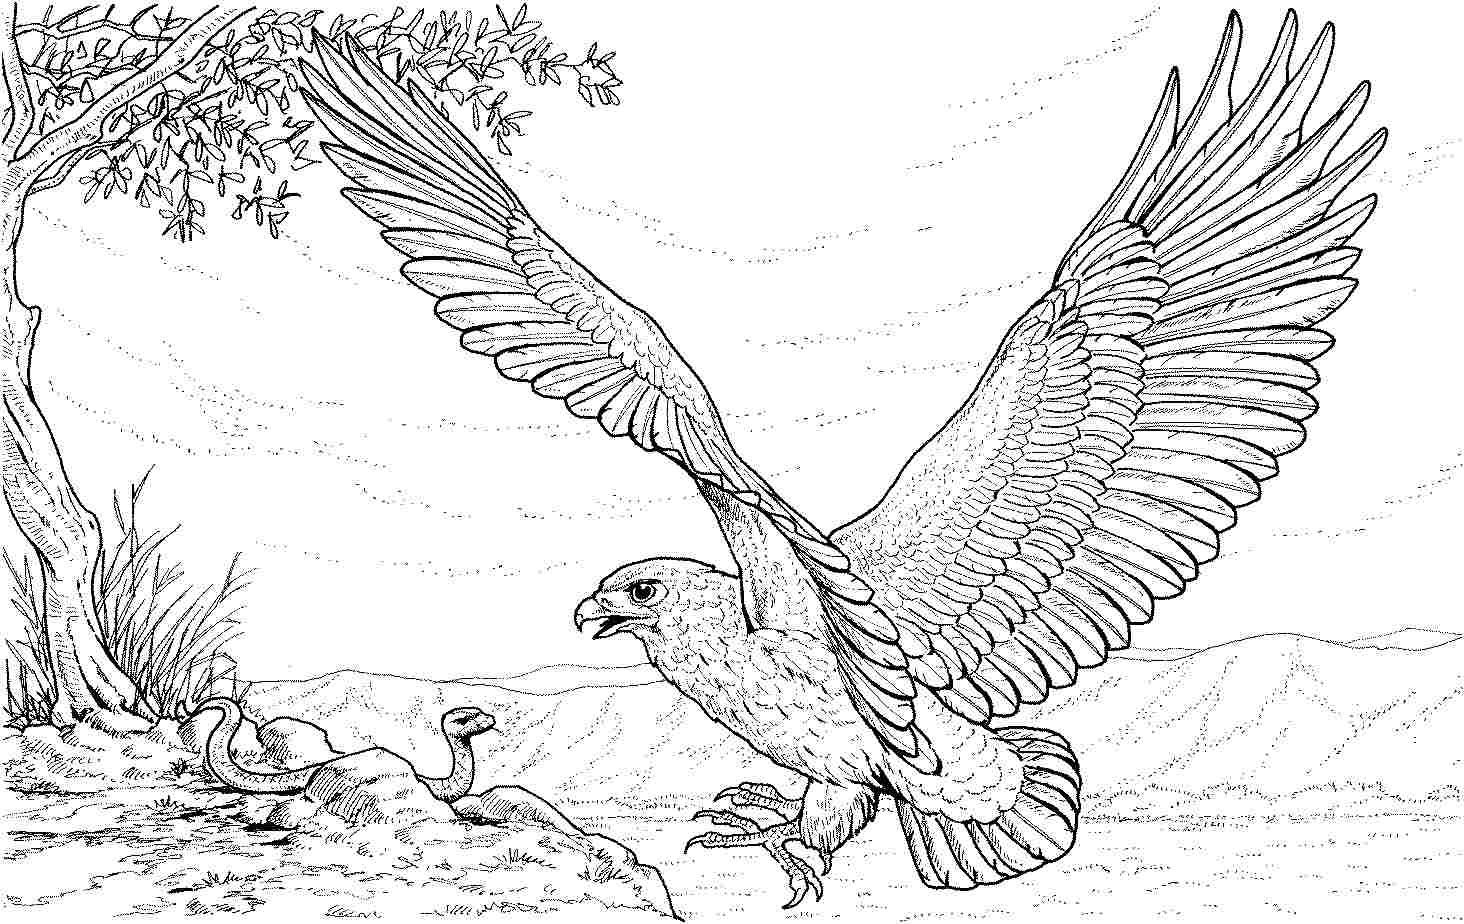 eagle adult coloring pages eagle bird coloring book for adults by alexanderpokusay coloring eagle pages adult